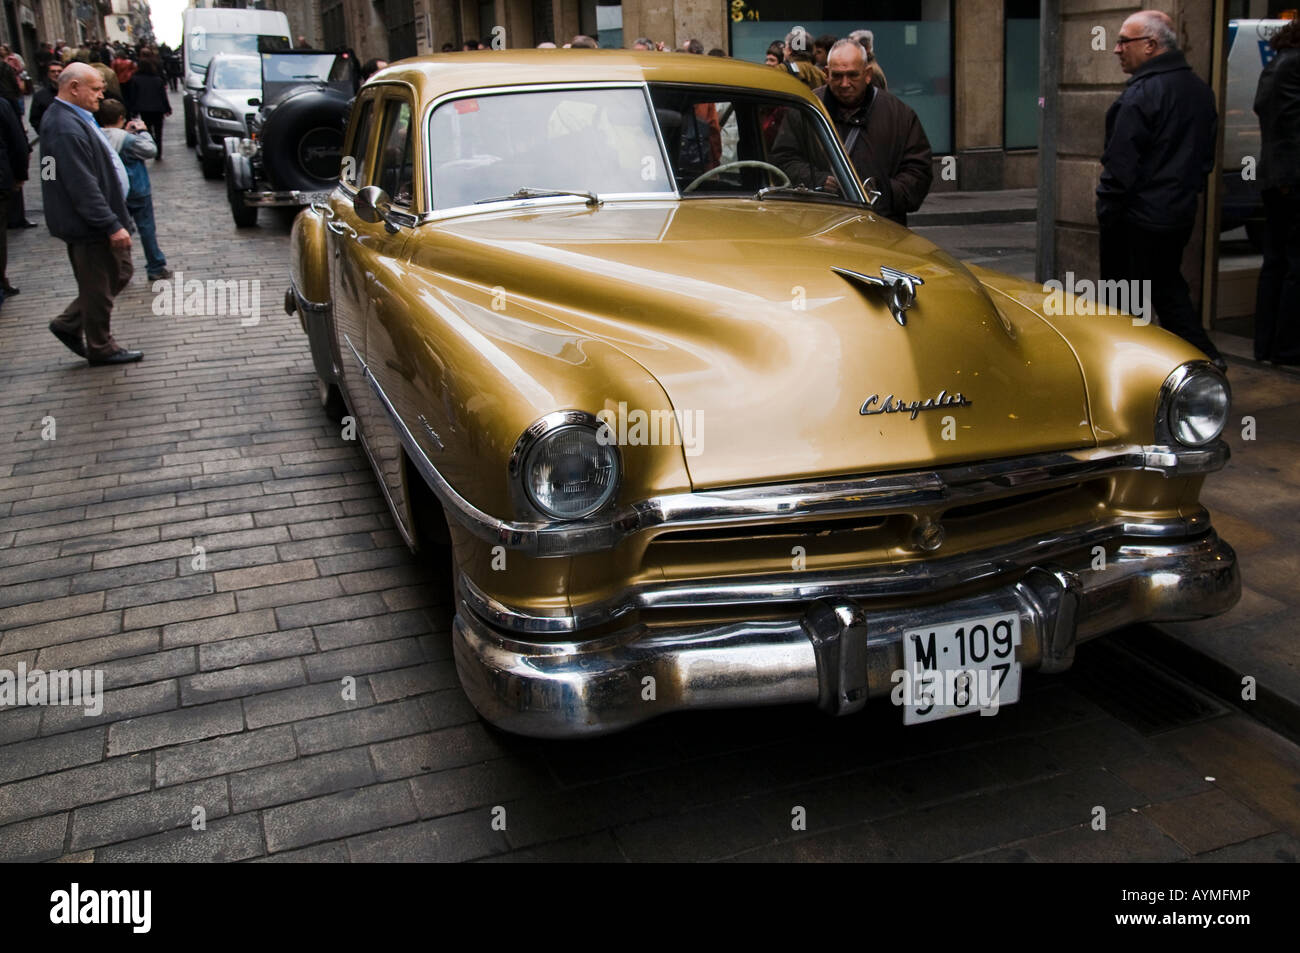 Old Chrysler Car During The Barcelona Sitges Vintage Cars Rally